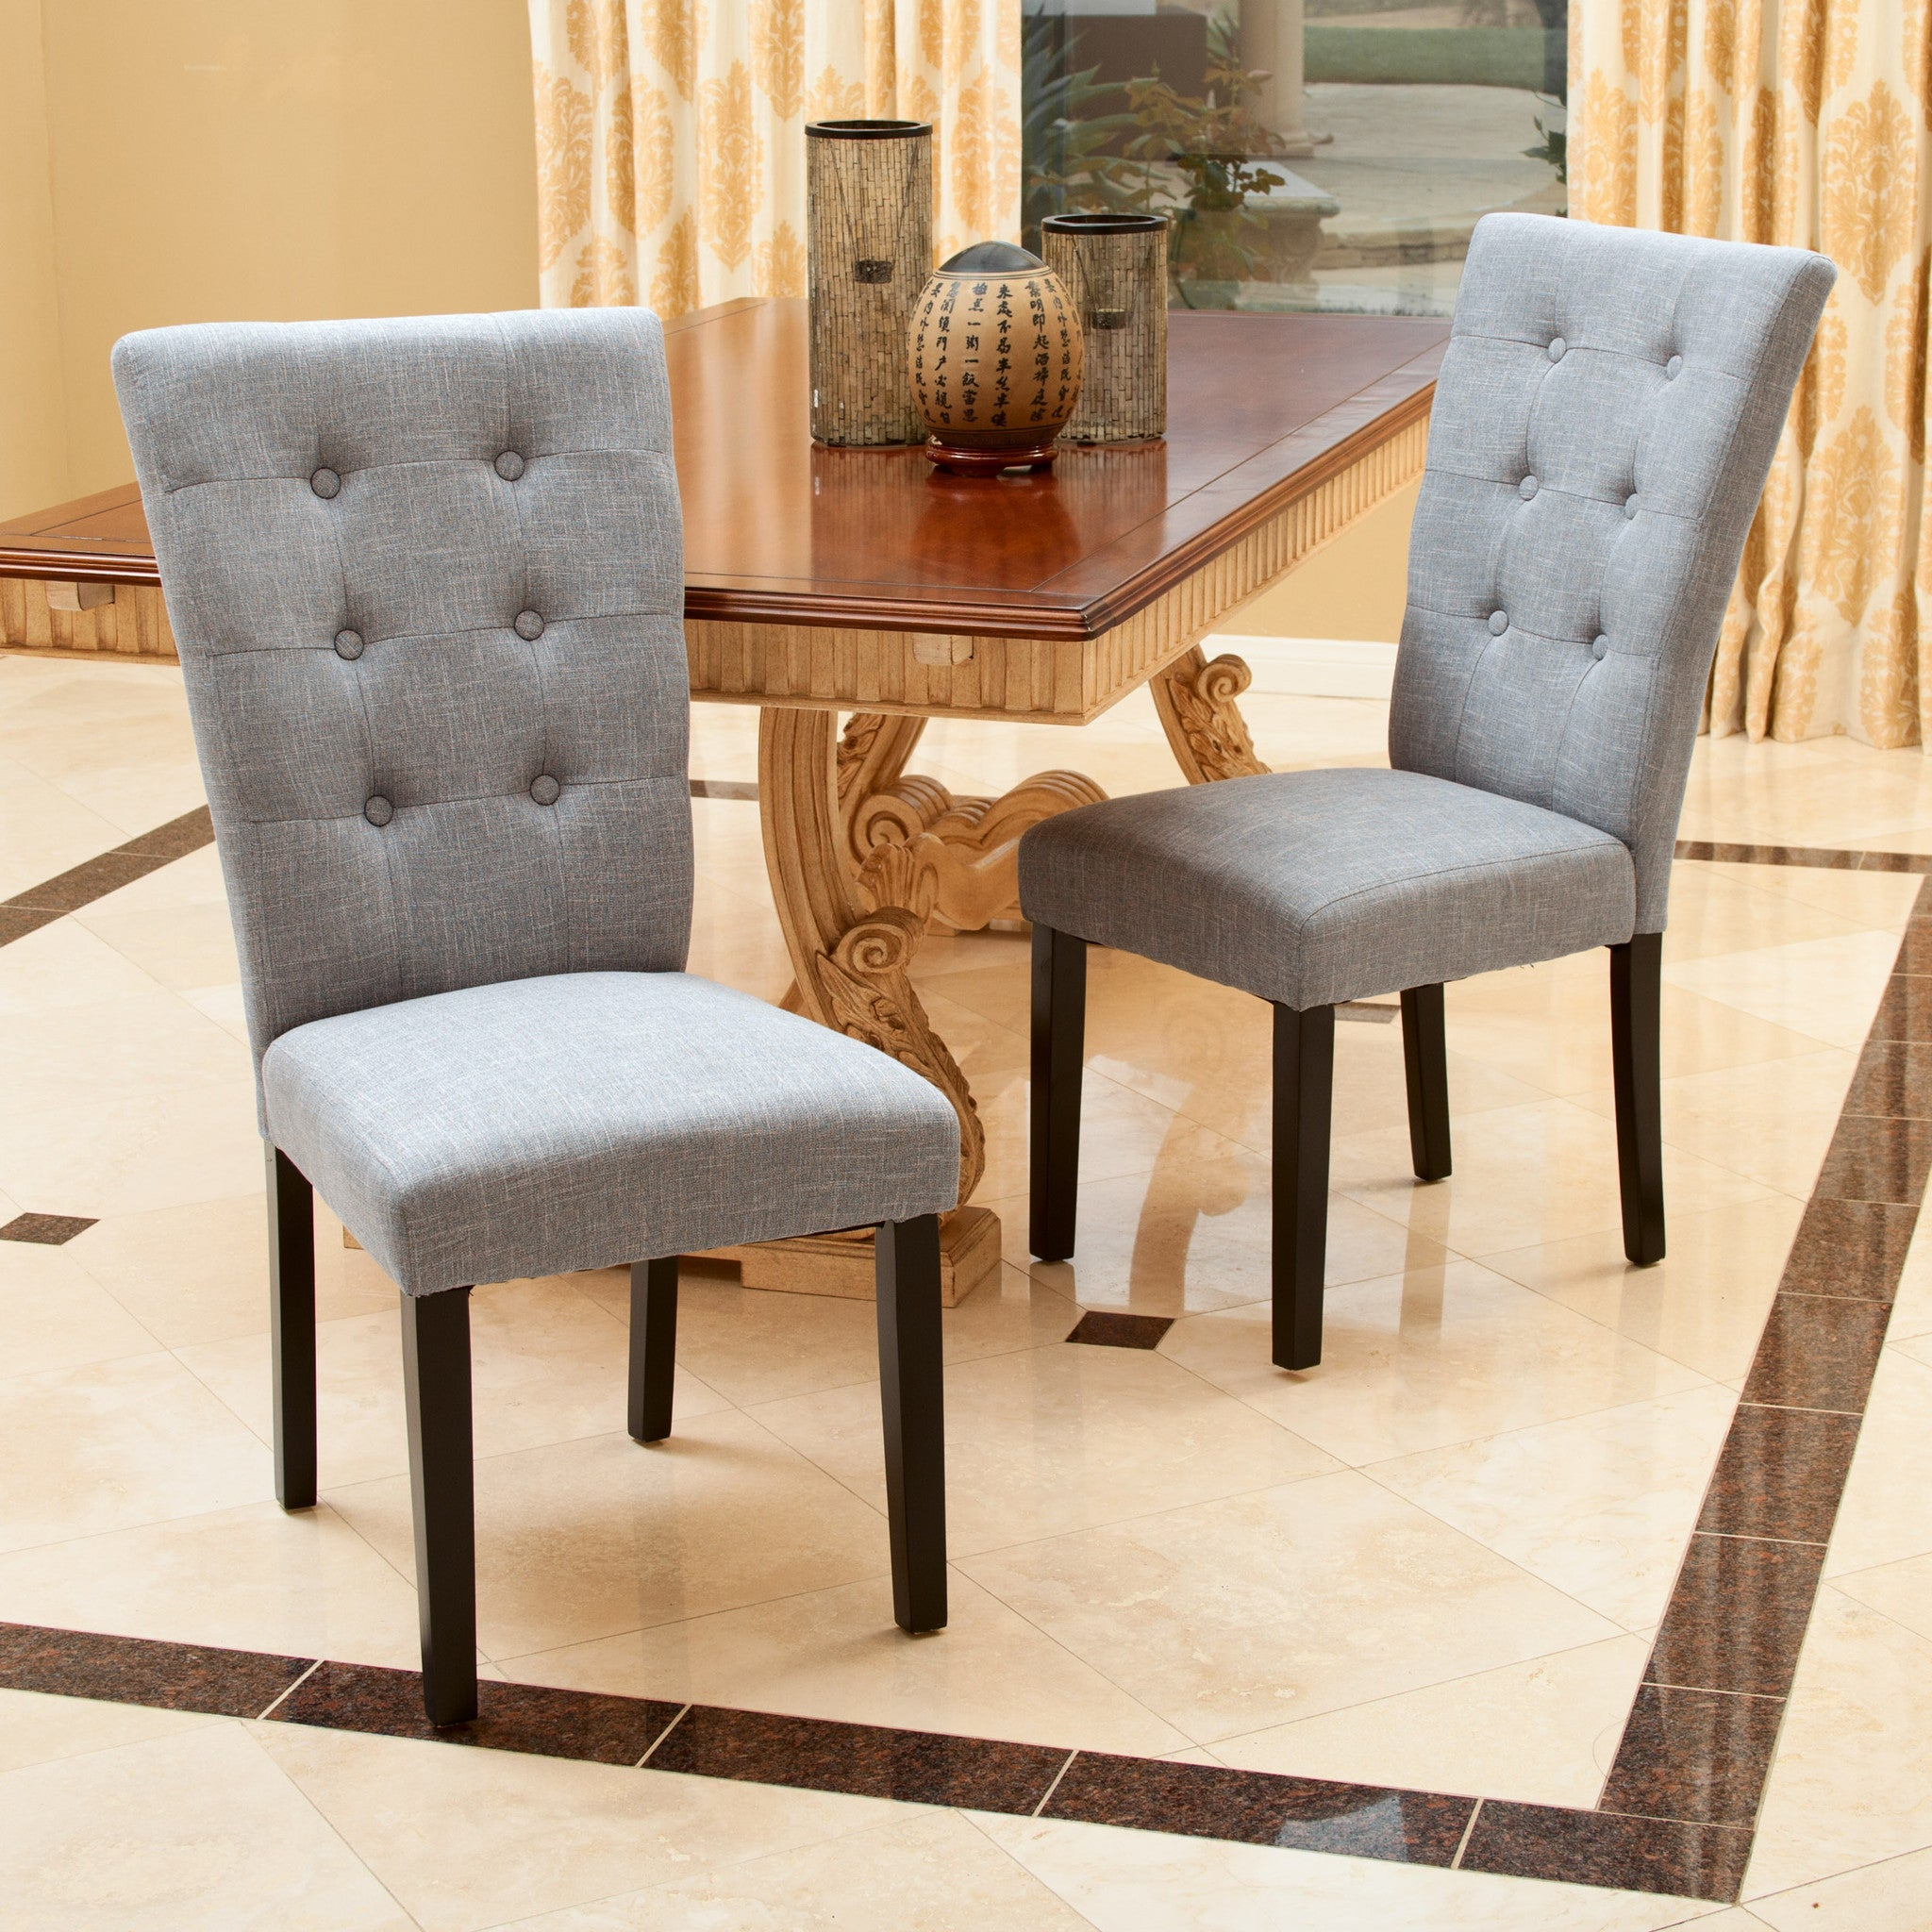 Leighton Grey Fabric Dining Chairs Set of 2